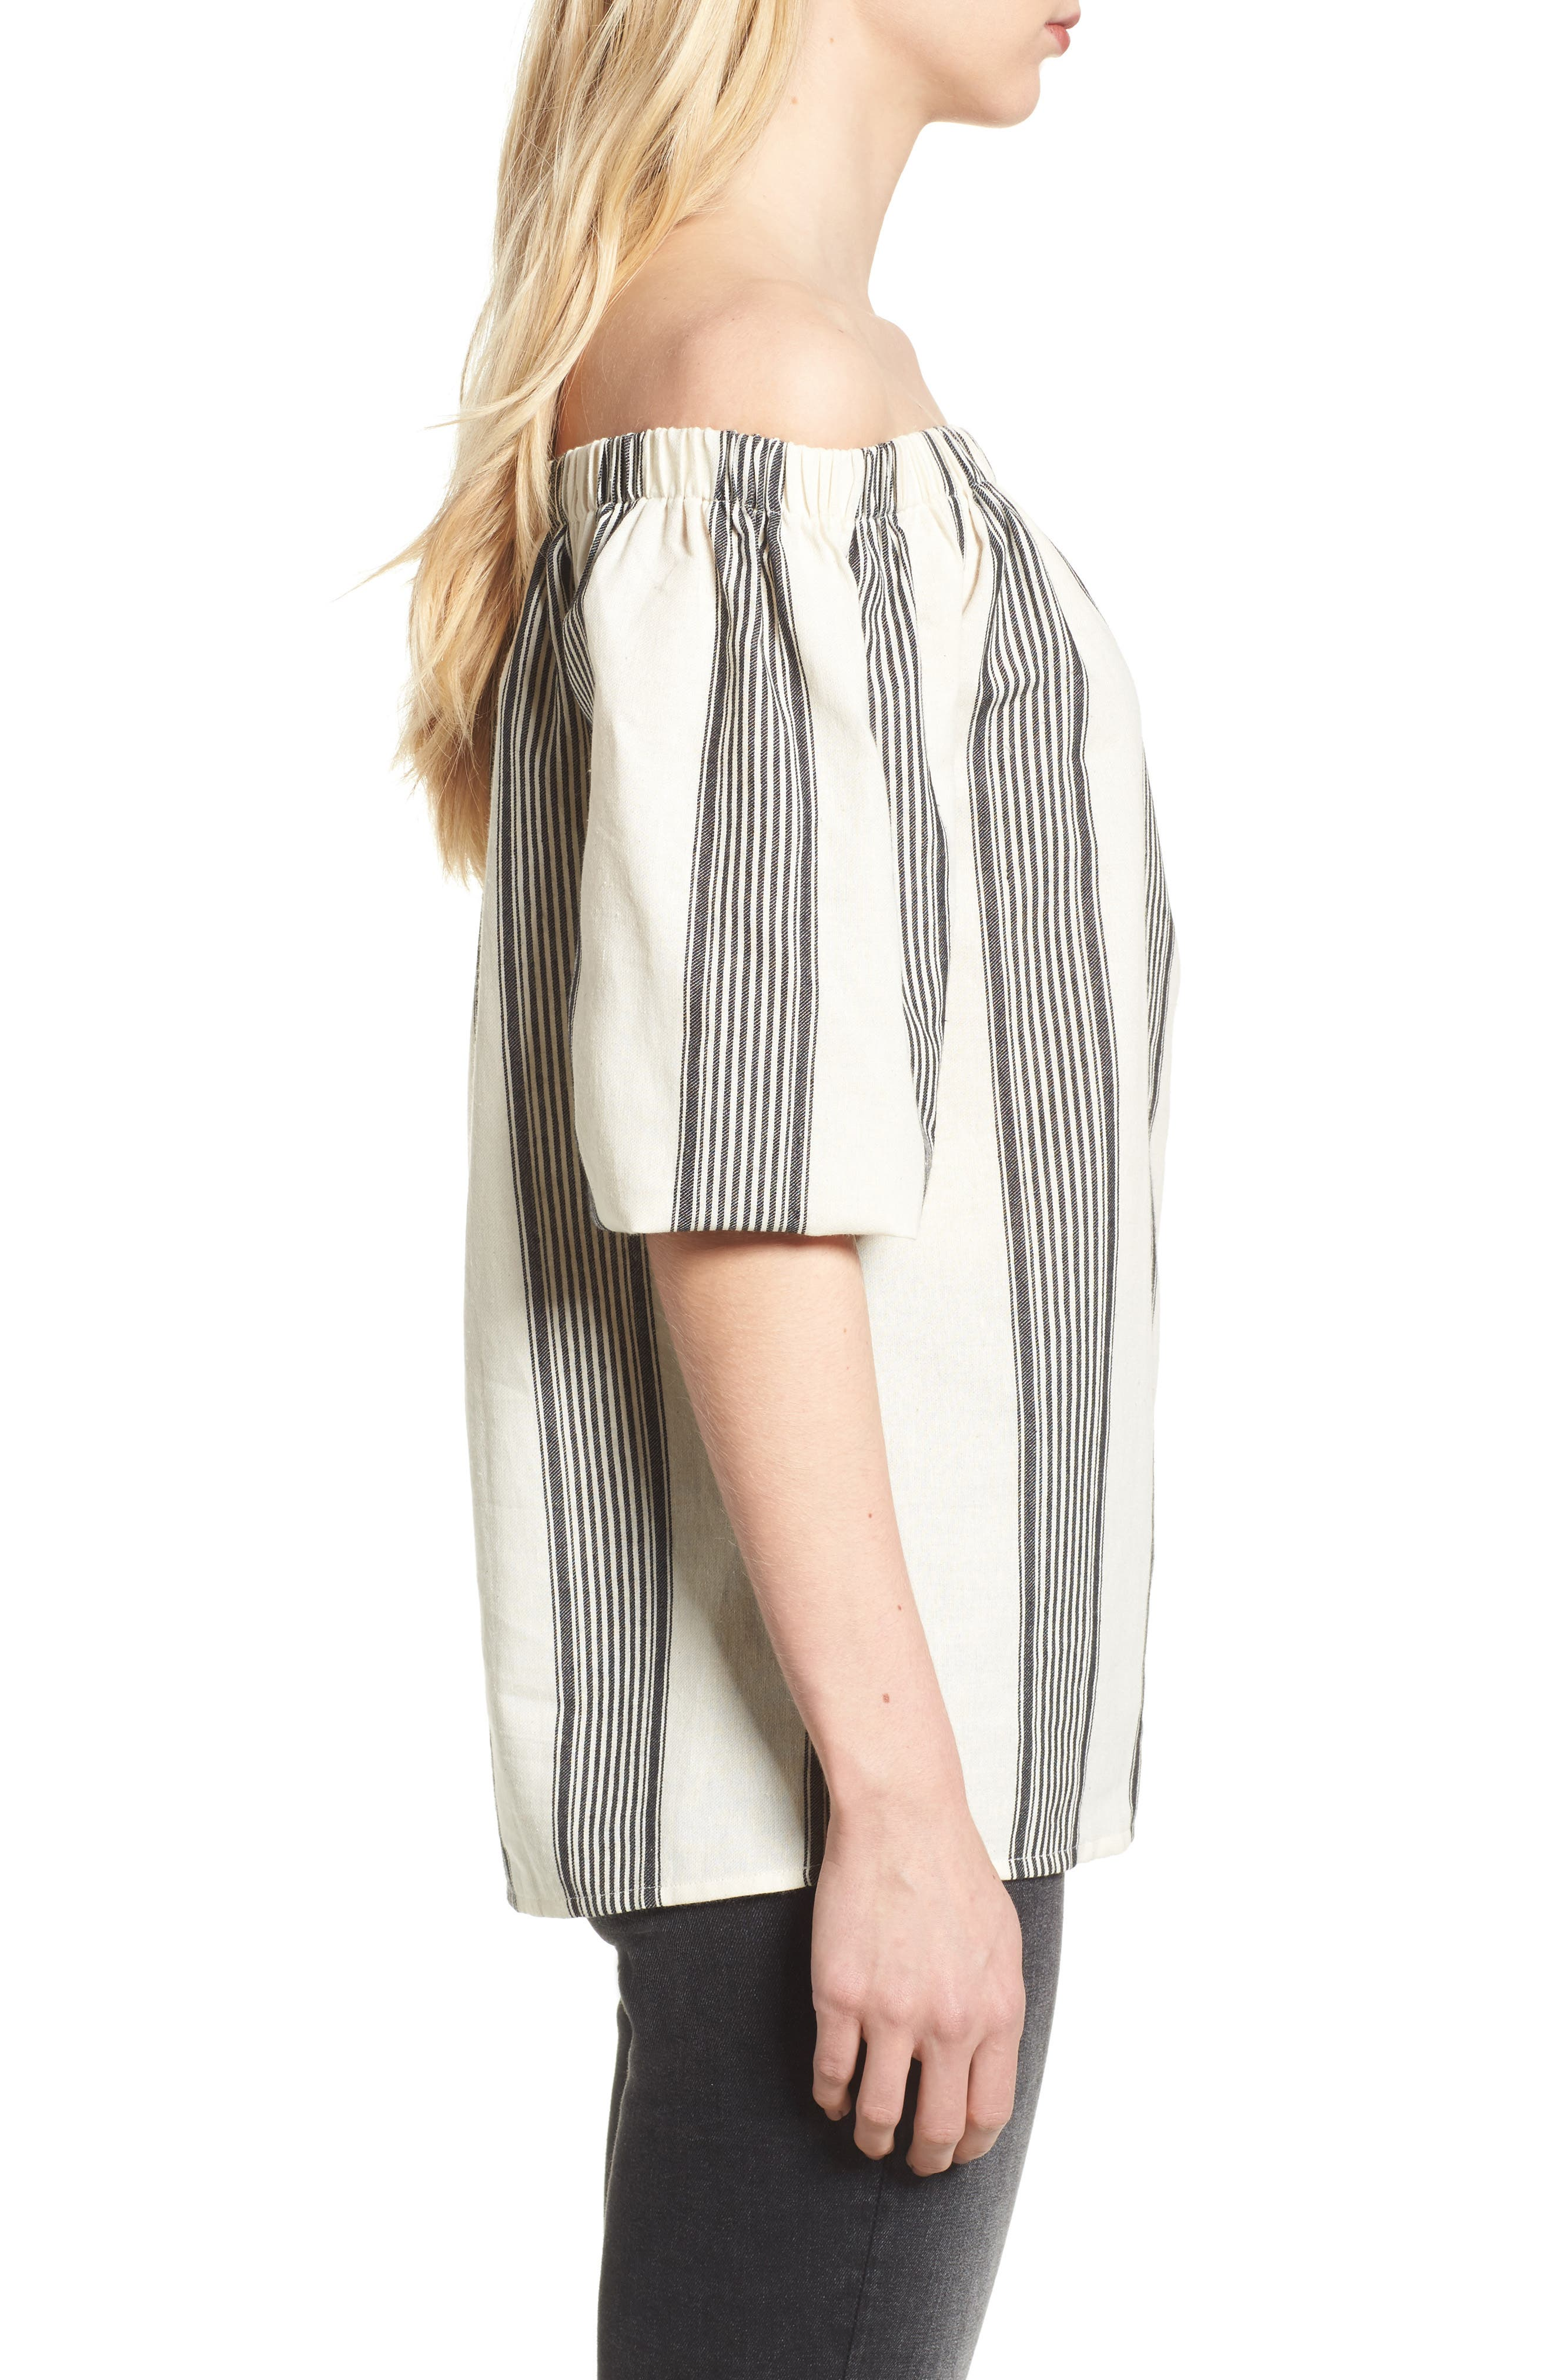 Bishop + Young Karlie Off the Shoulder Top,                             Alternate thumbnail 3, color,                             Grey Stripe